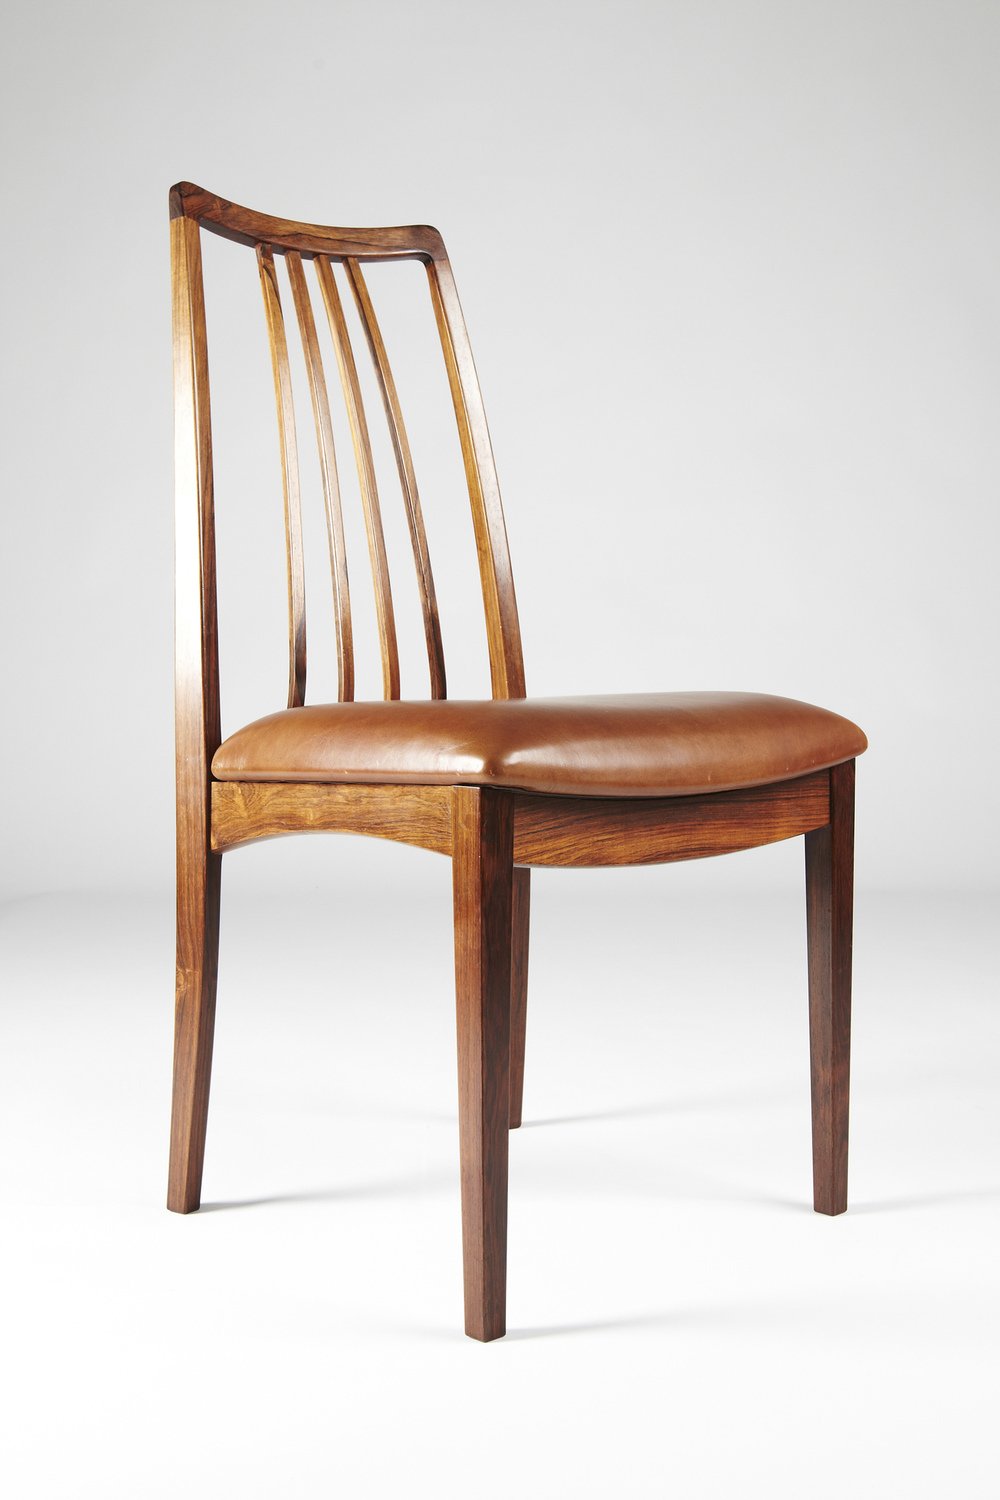 N Kofoed 1956 Dining Chair • made 1956-69 •